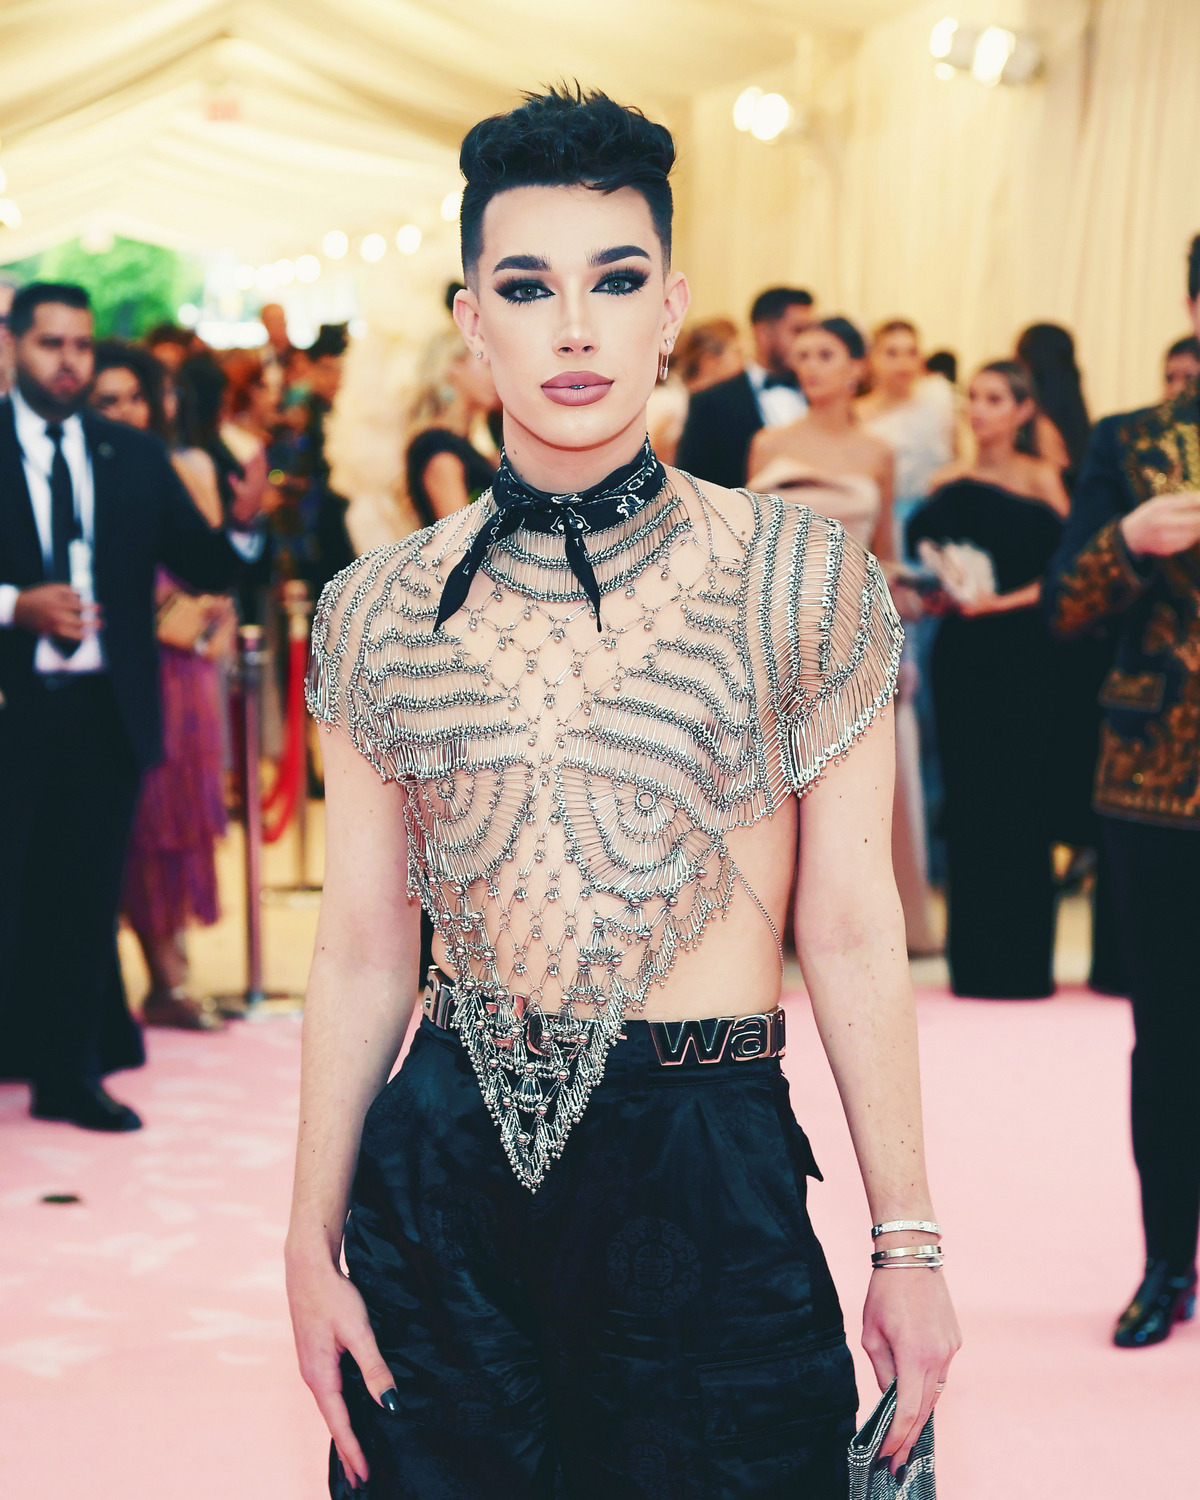 Who Is James Charles? His Subscriber Count & Why He's Famous